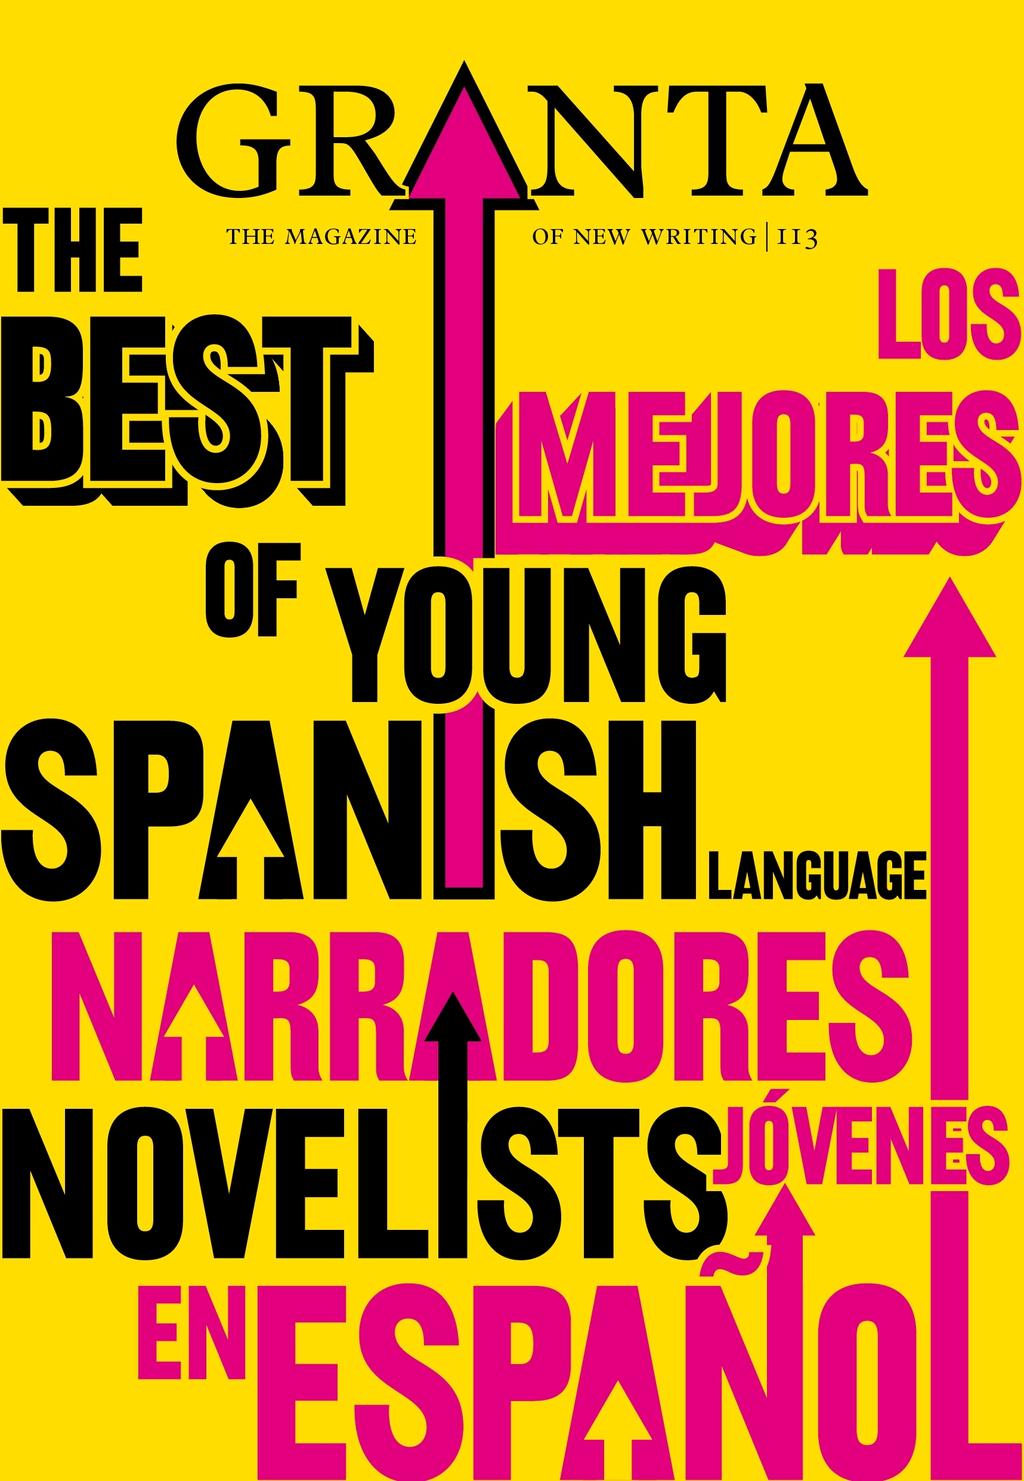 Granta 113 The Best of Young Spanish Language Novelists